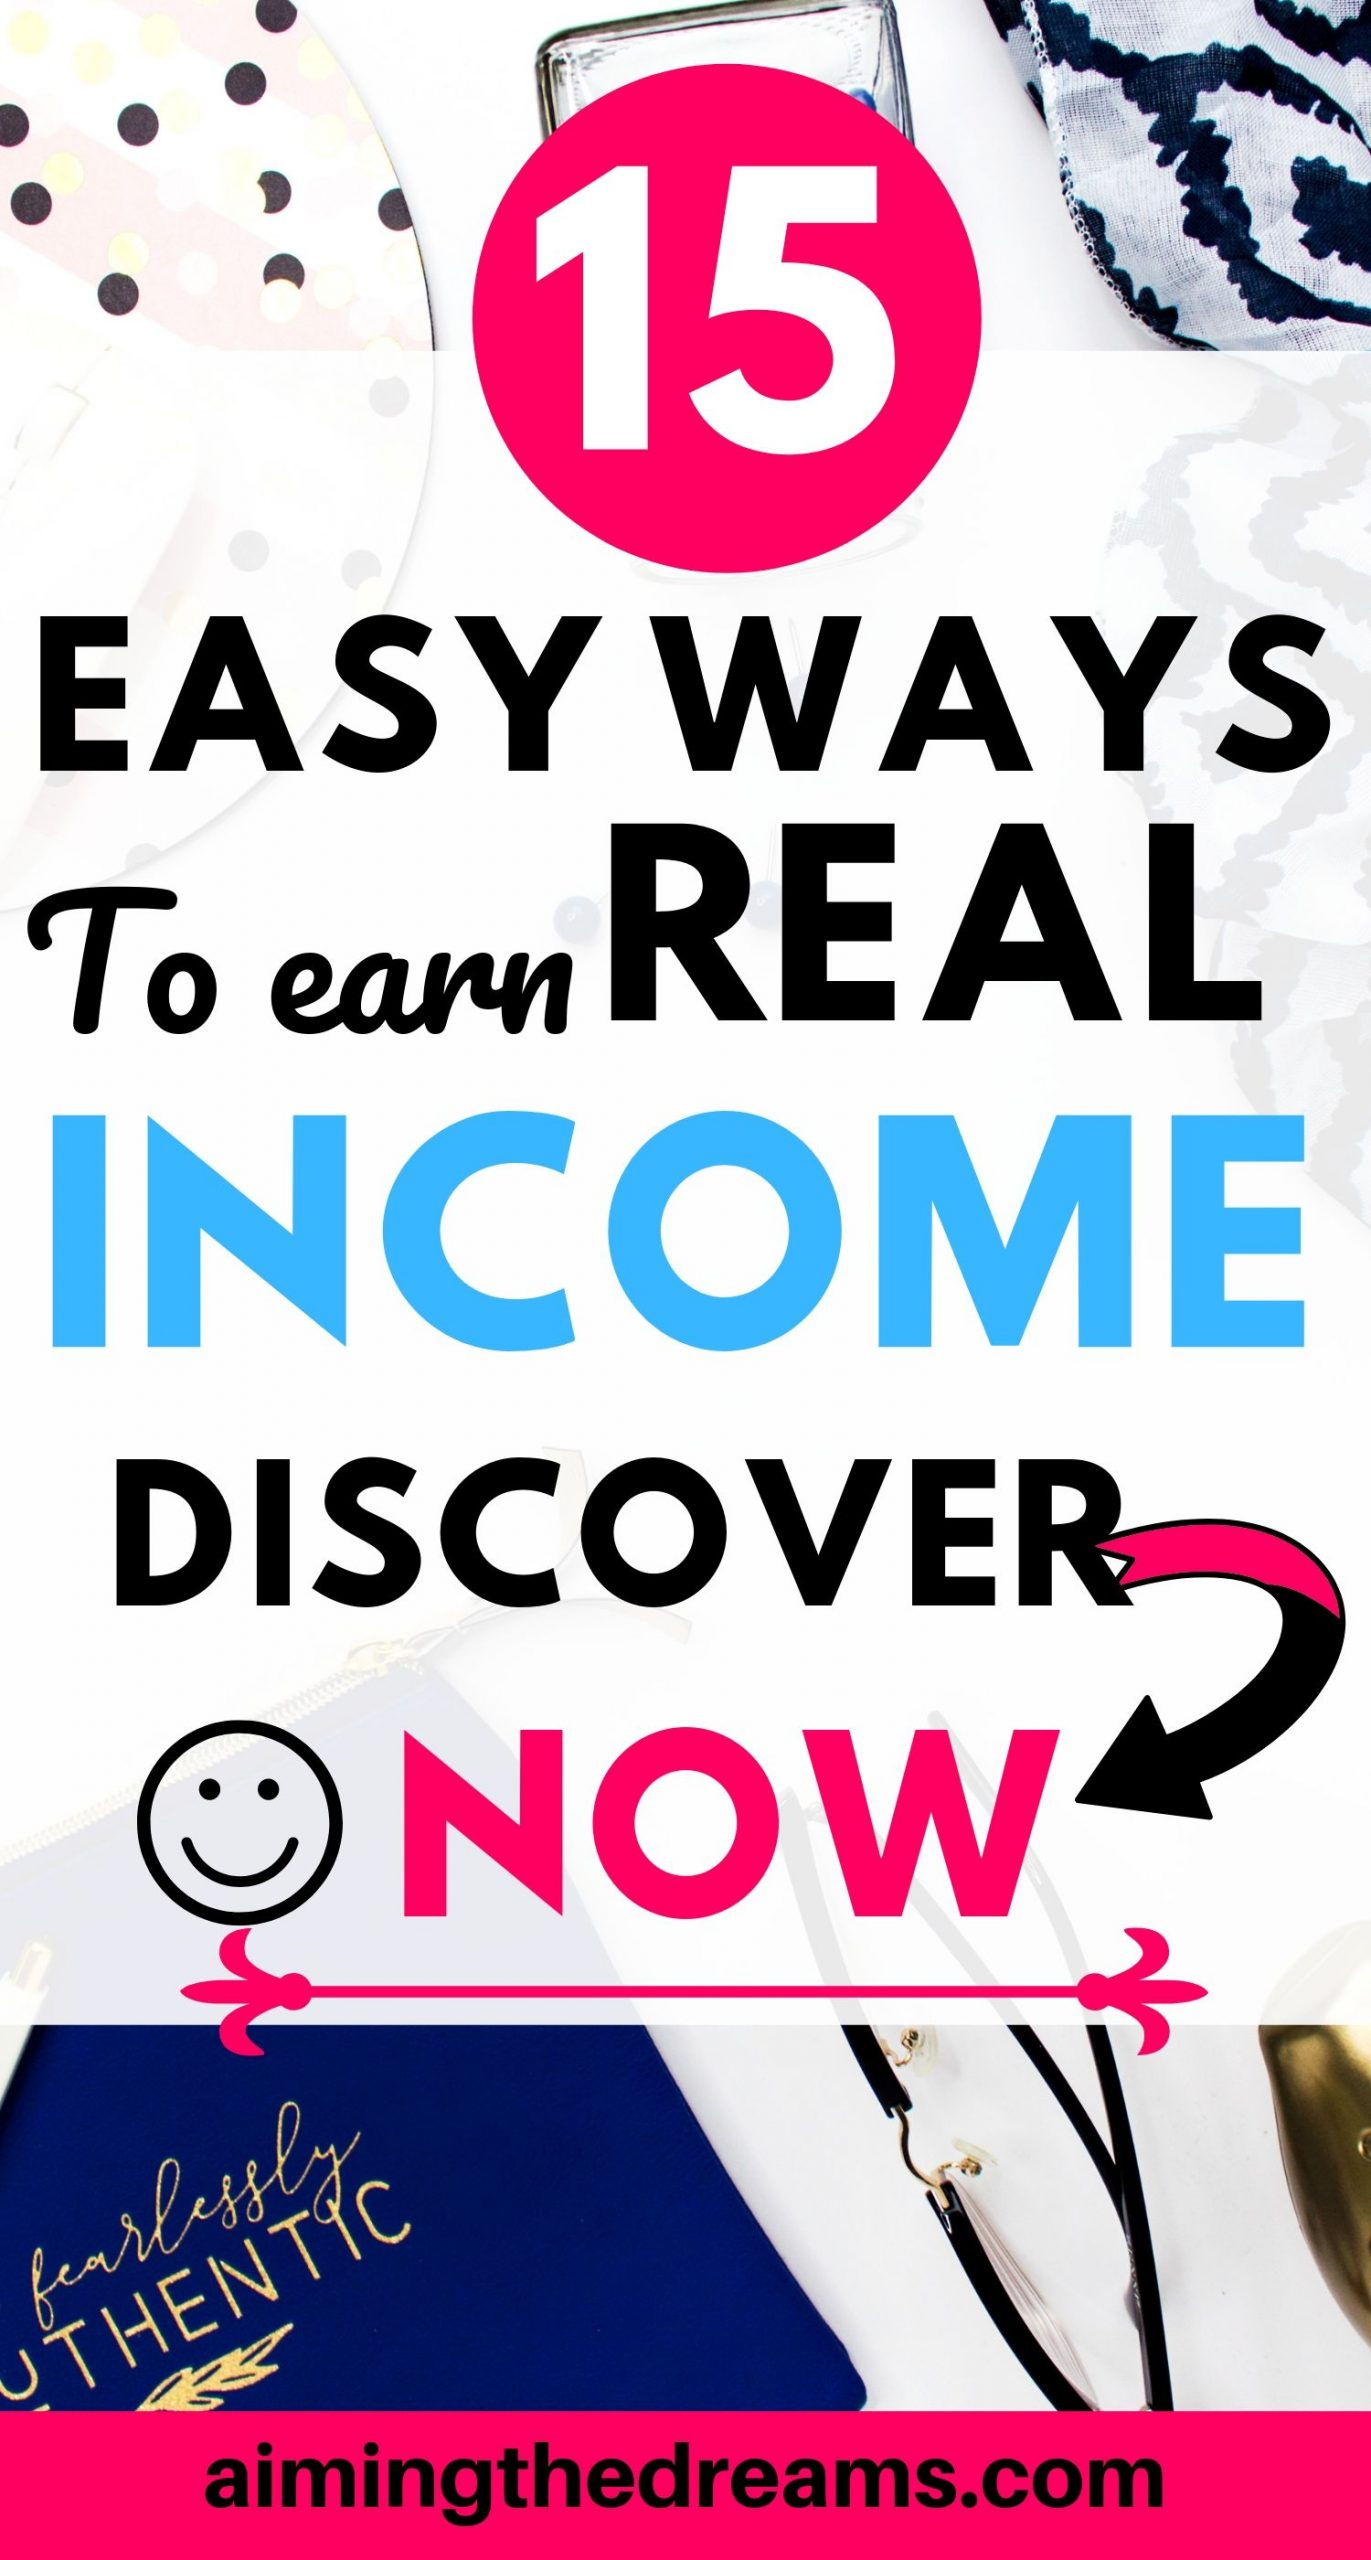 15 ways to earn real income the easy way. These side hustles let you earn money and #work from home.